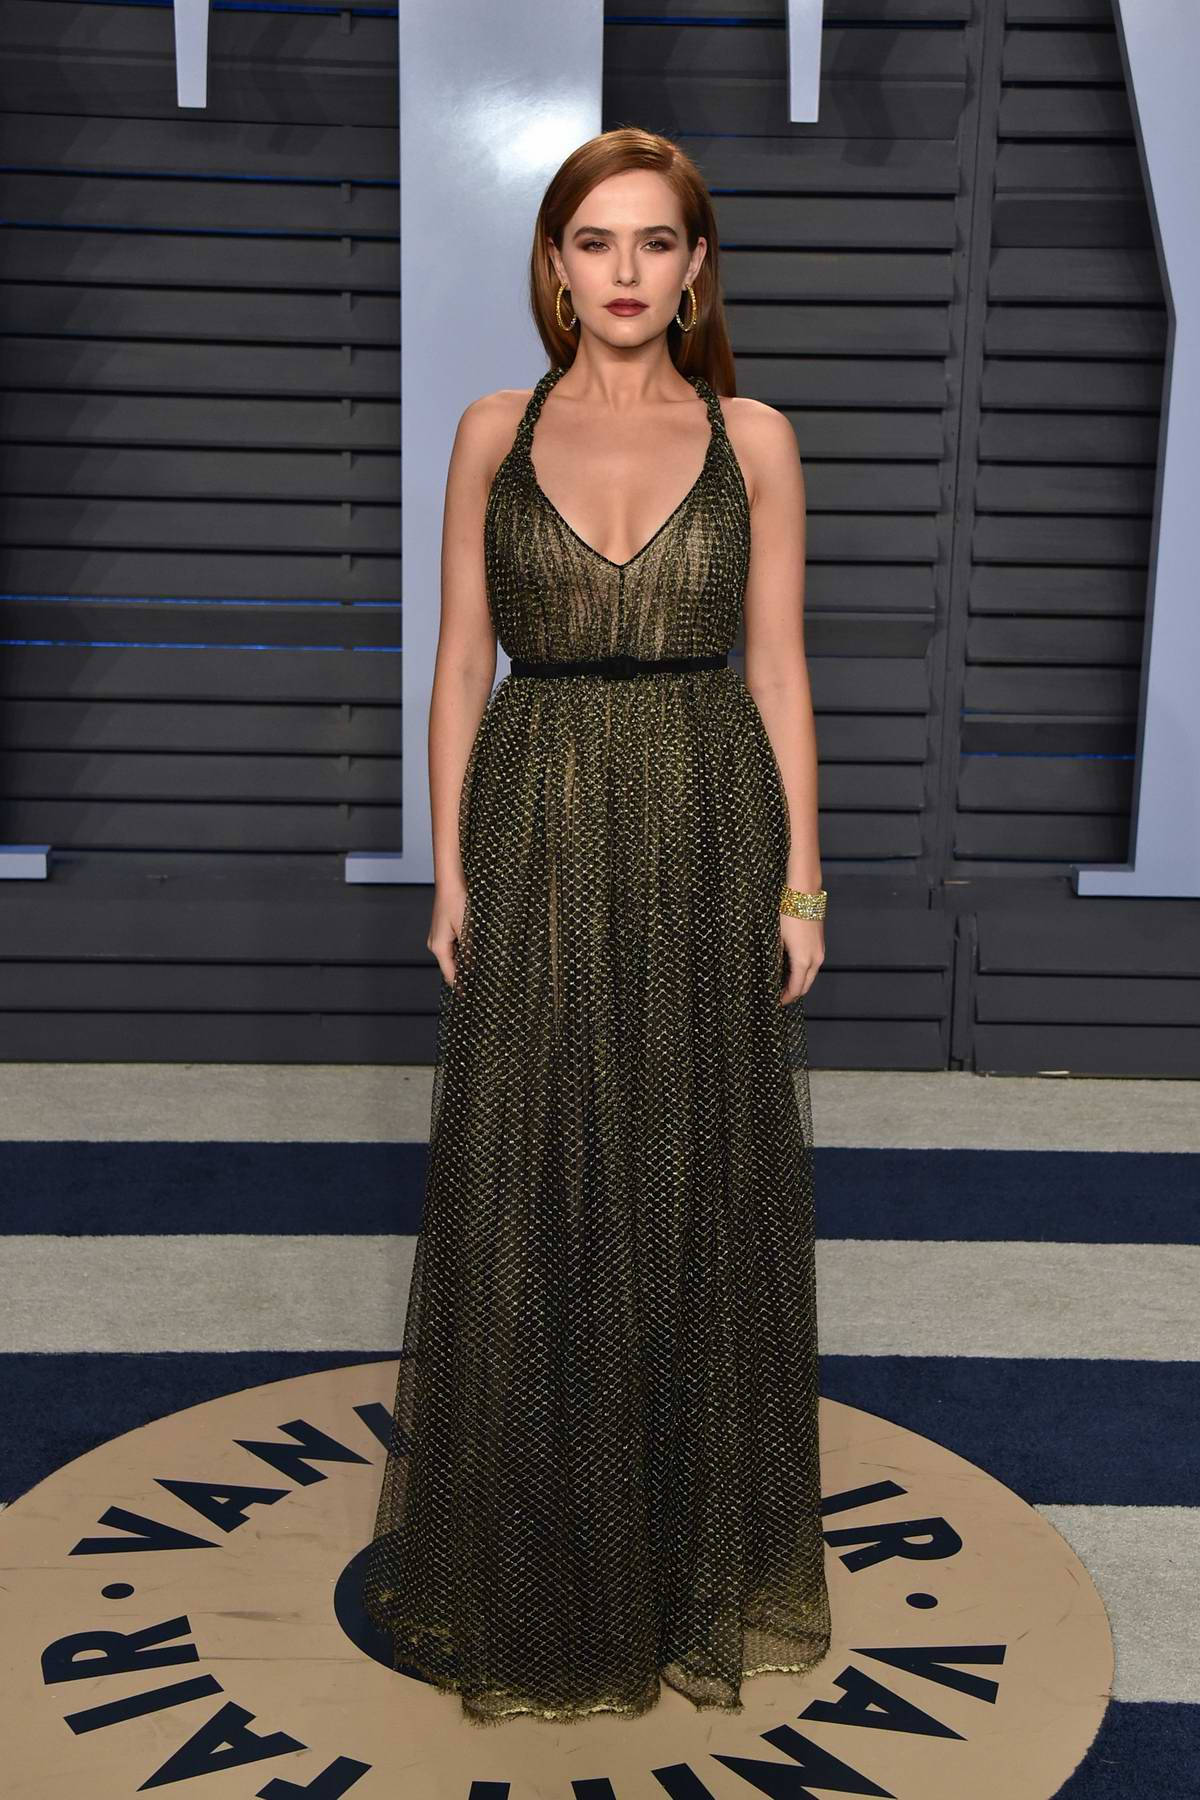 Zoey Deutch attends 2018 Vanity Fair Oscar Party at the Wallis Annenberg Center for the Performing Arts in Beverly Hills, Los Angeles